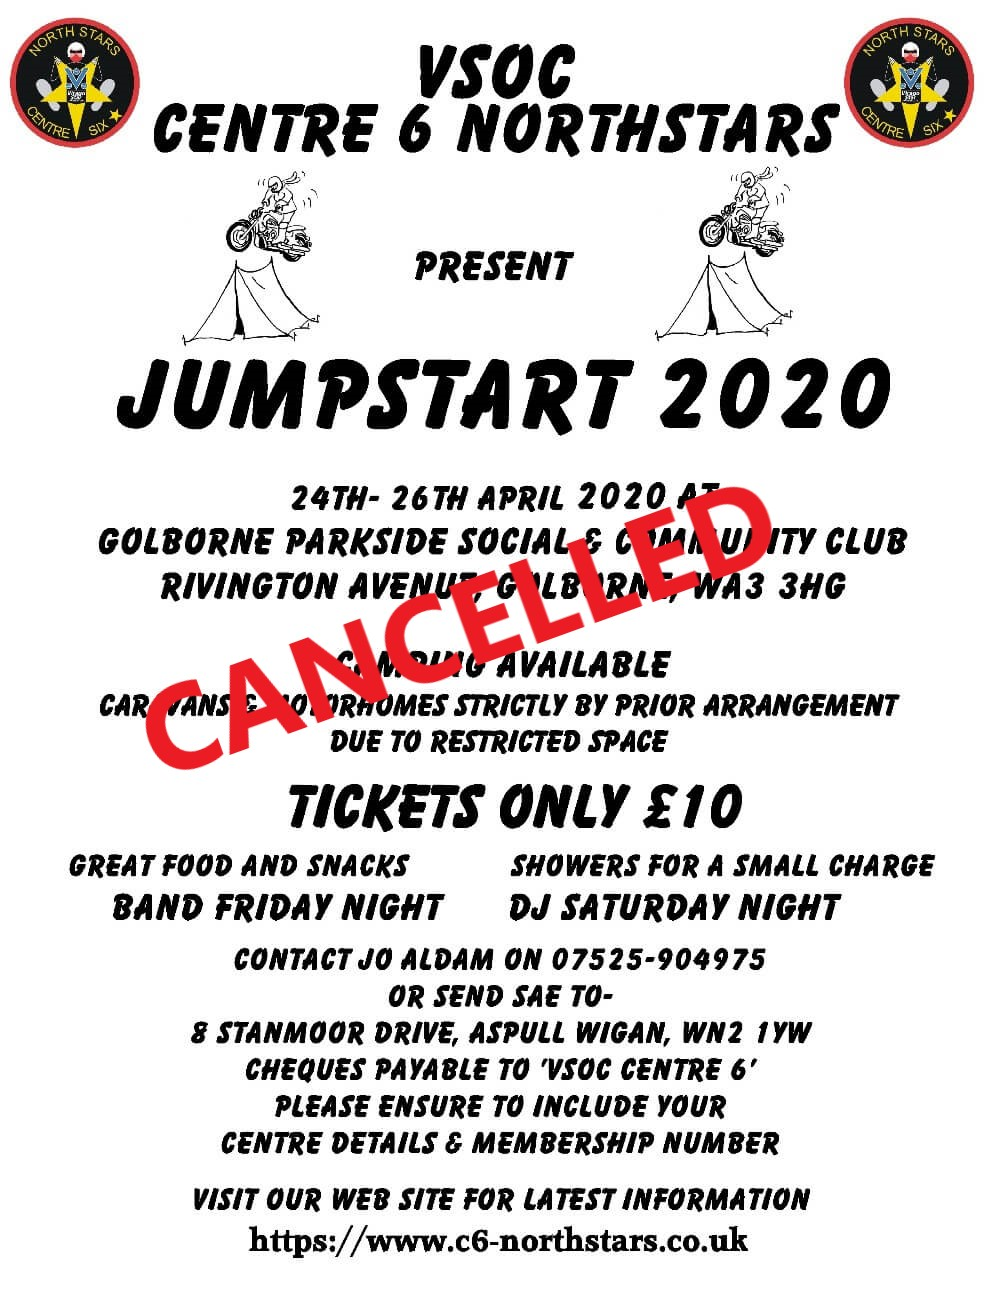 CANCELLED - JUMPSTART 2020 @ Golborne Parkside Sports and Community Club